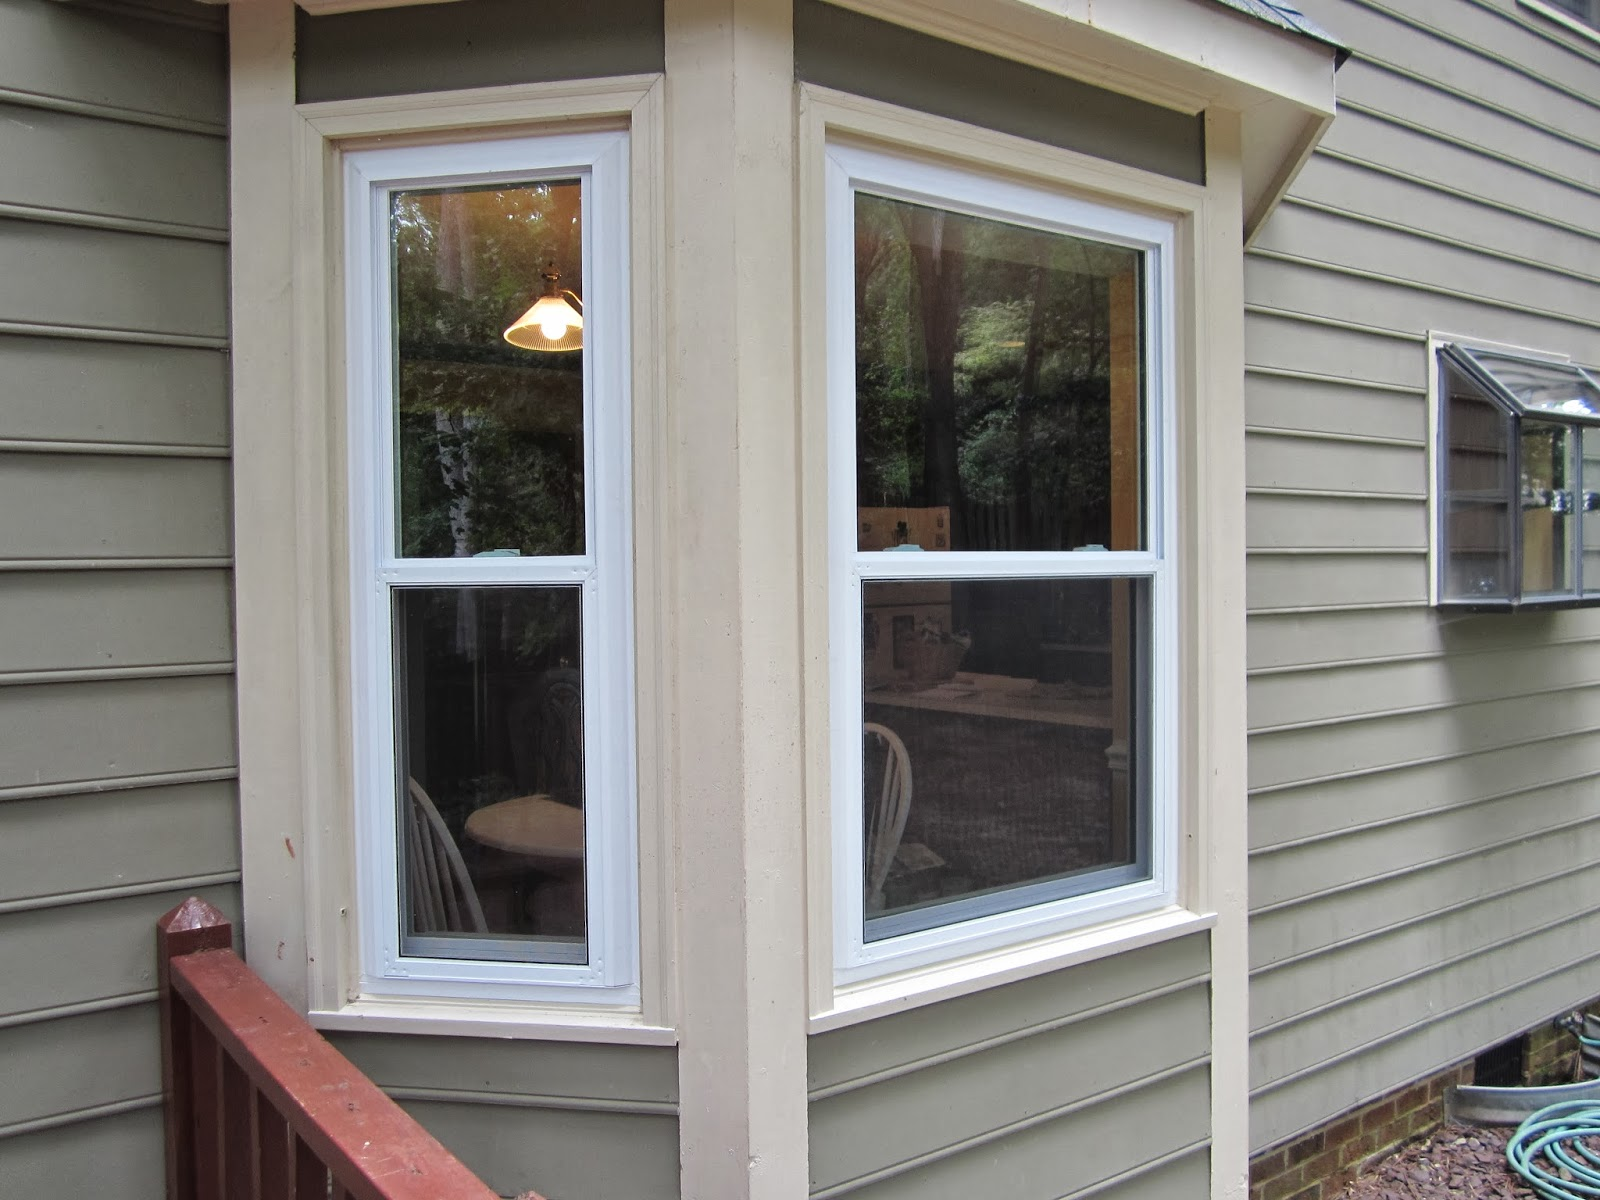 The amberican dream from bland to bold exterior paint - Vinyl trim around exterior windows ...